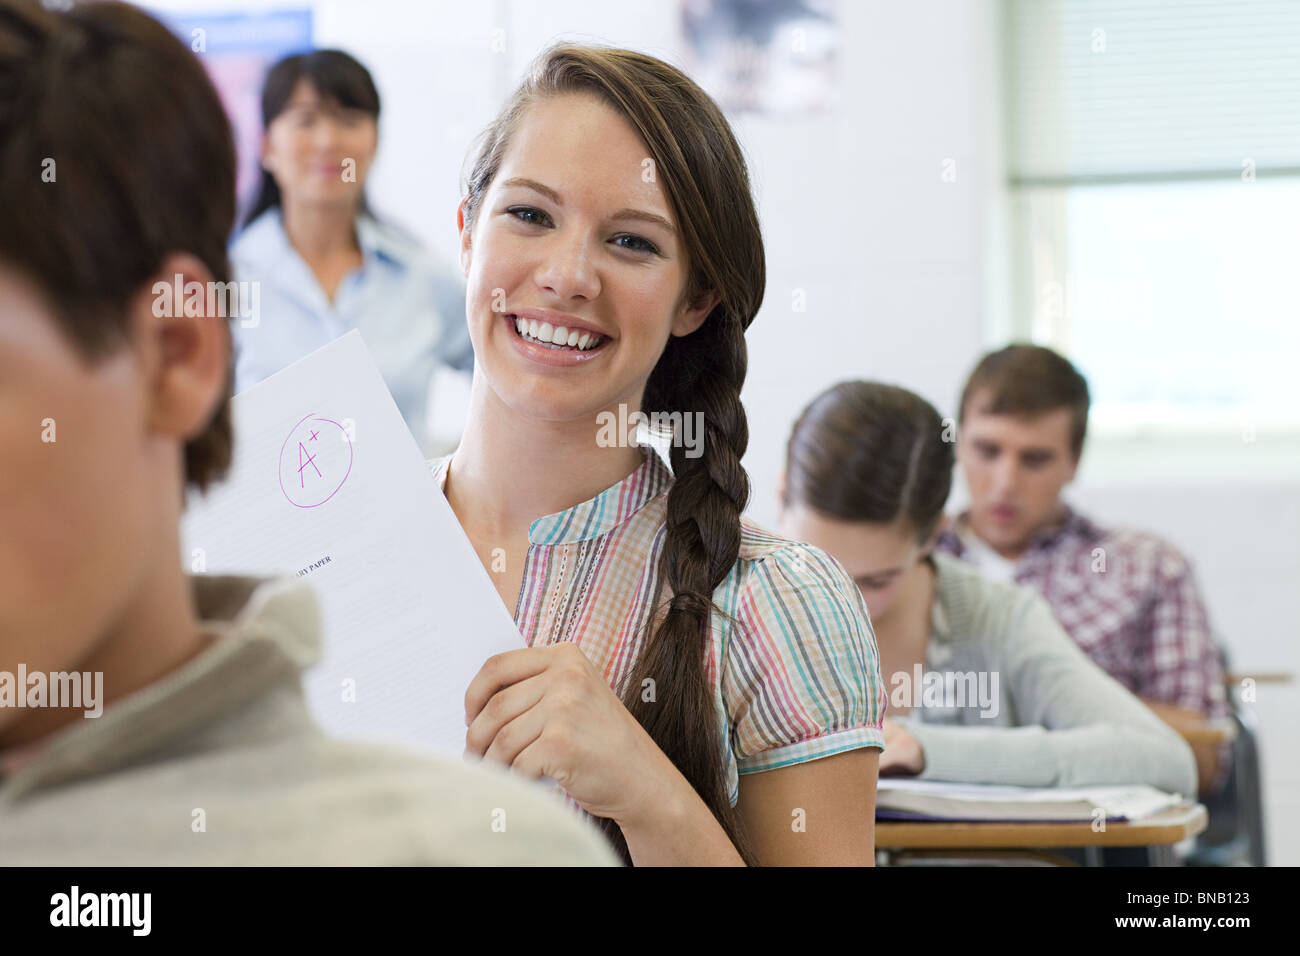 Successful female high school student holding assignment - Stock Image